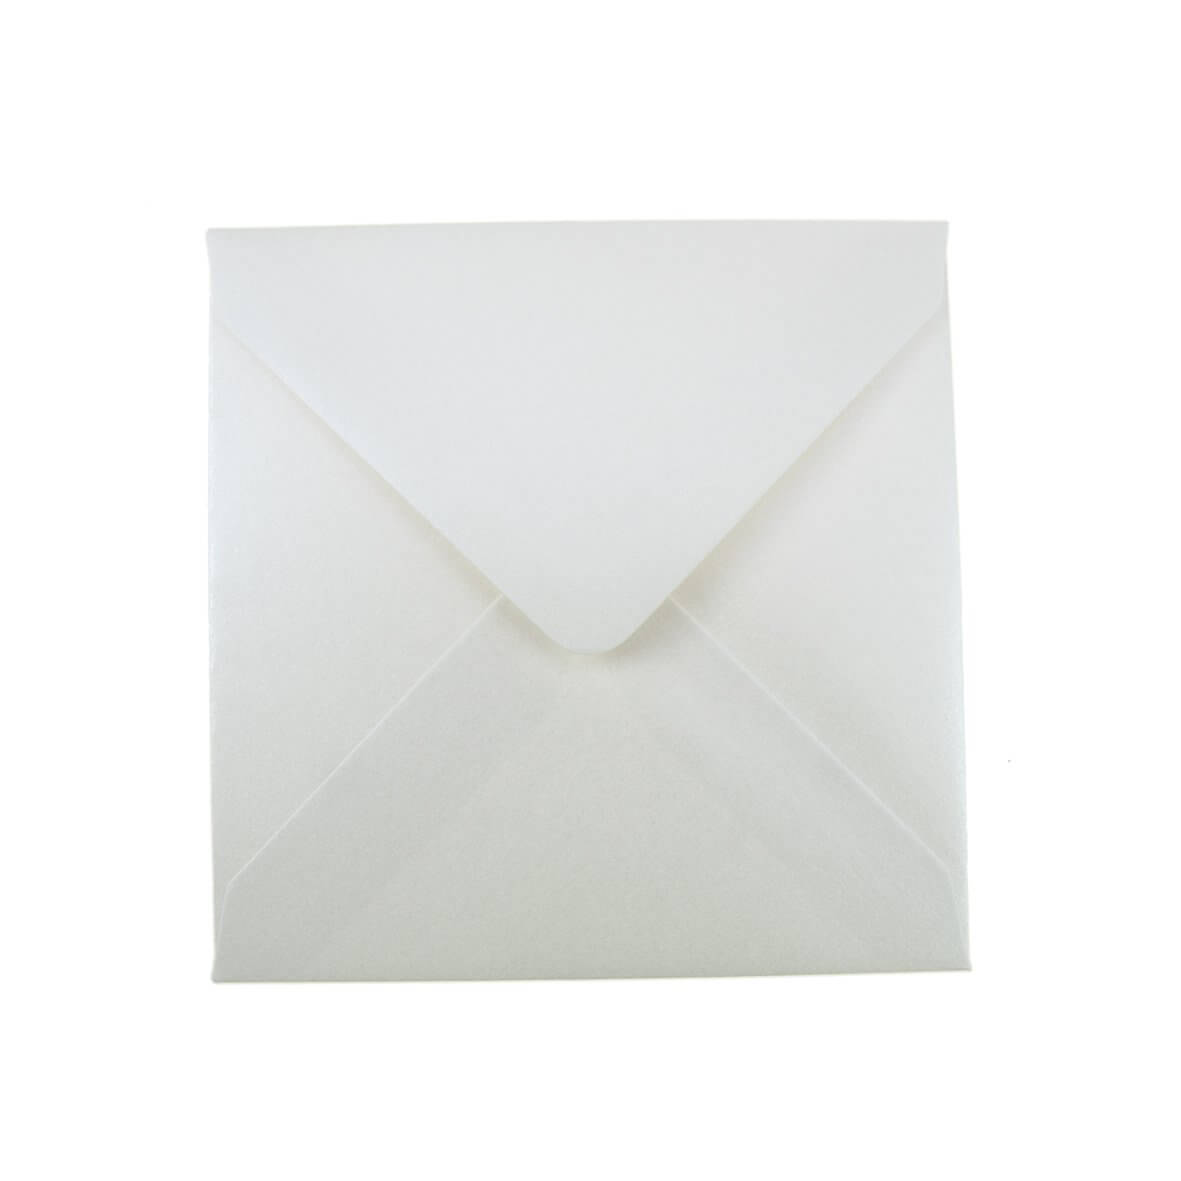 Pearlescent Ivory Small Square 130mm Envelope